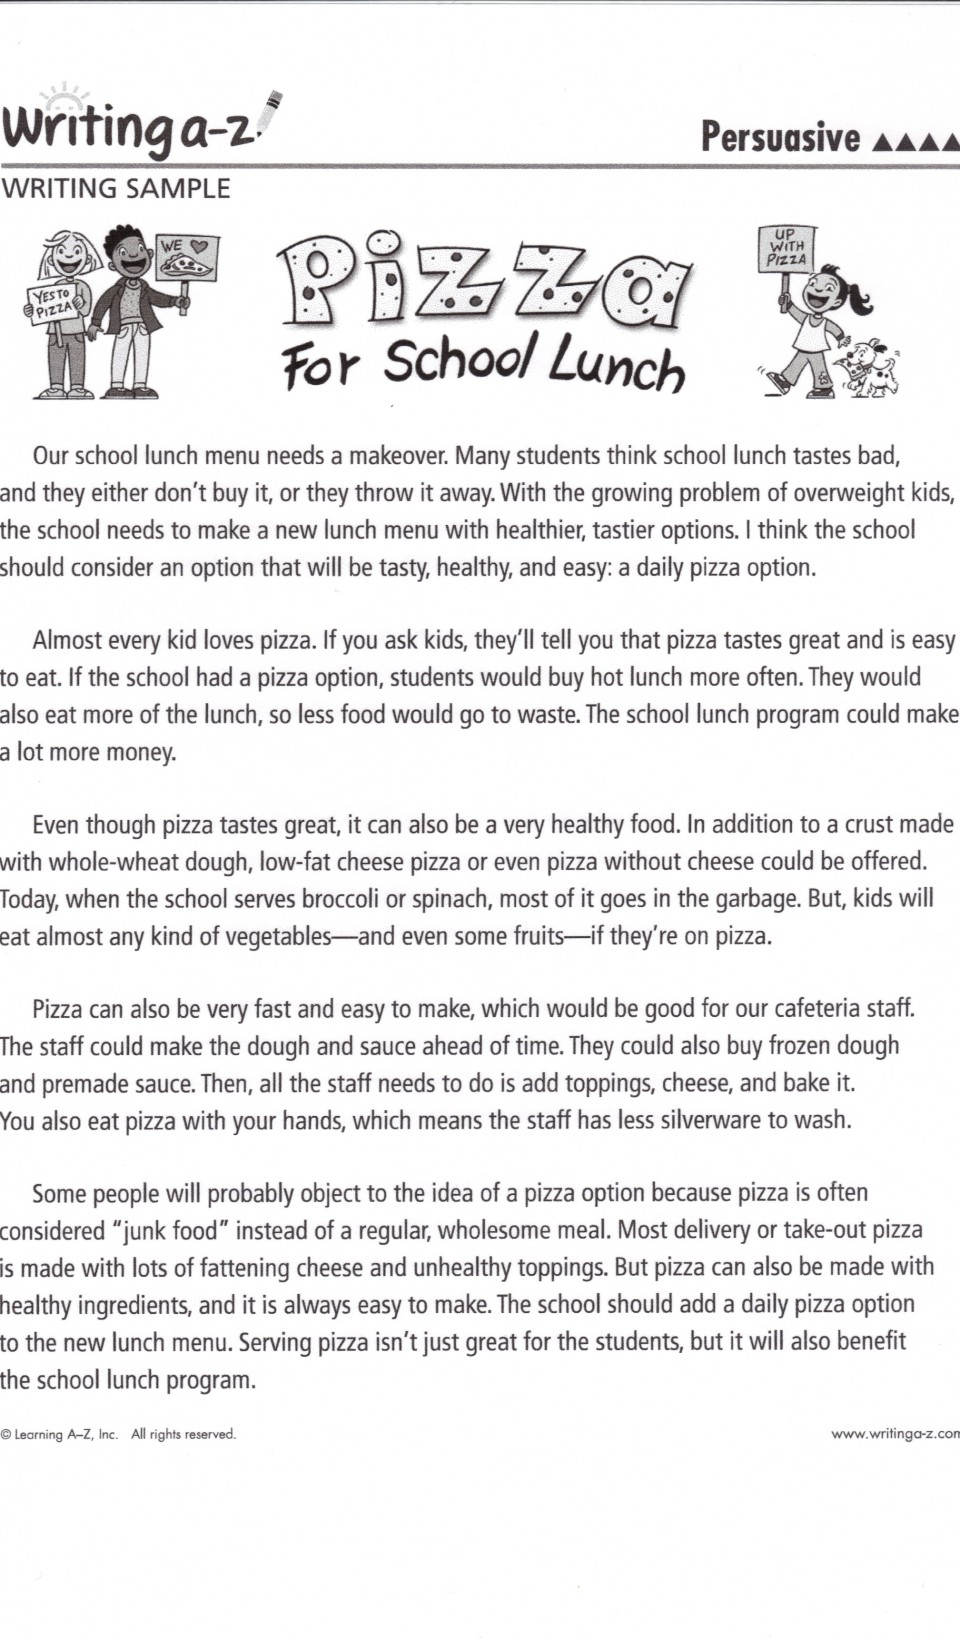 004 Essay Example 20102093b343b4120pm20fluent Opinion About Fast Unbelievable Food Is A Good Alternative To Cooking For Yourself Short Restaurants 960